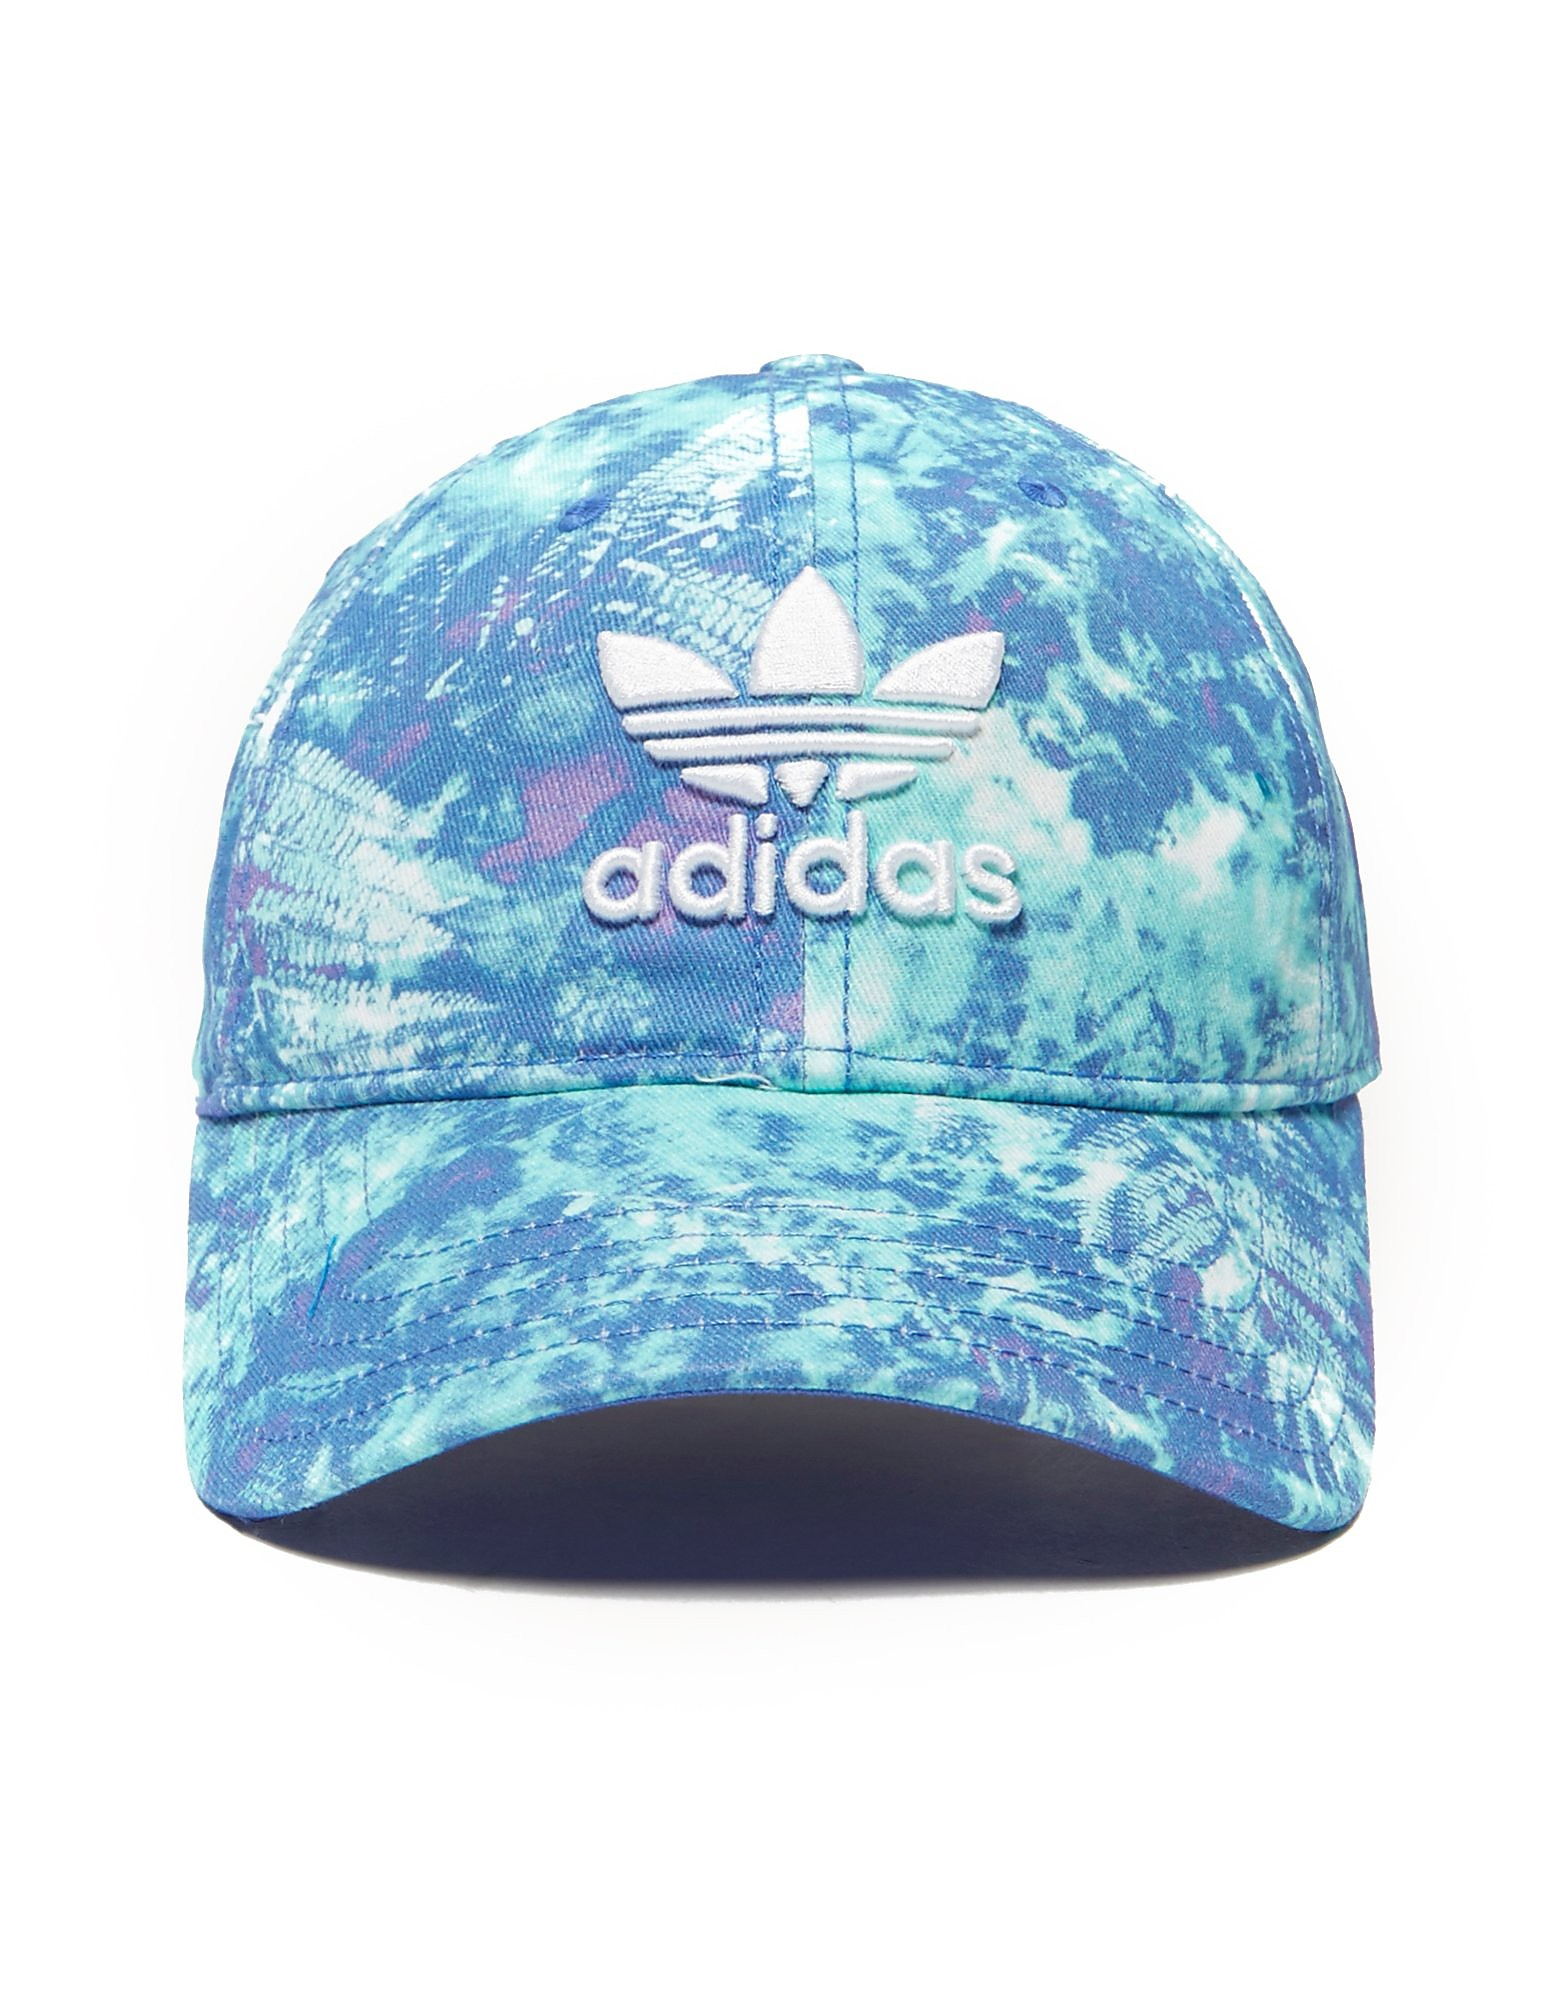 adidas Originals Ocean Elements Cap